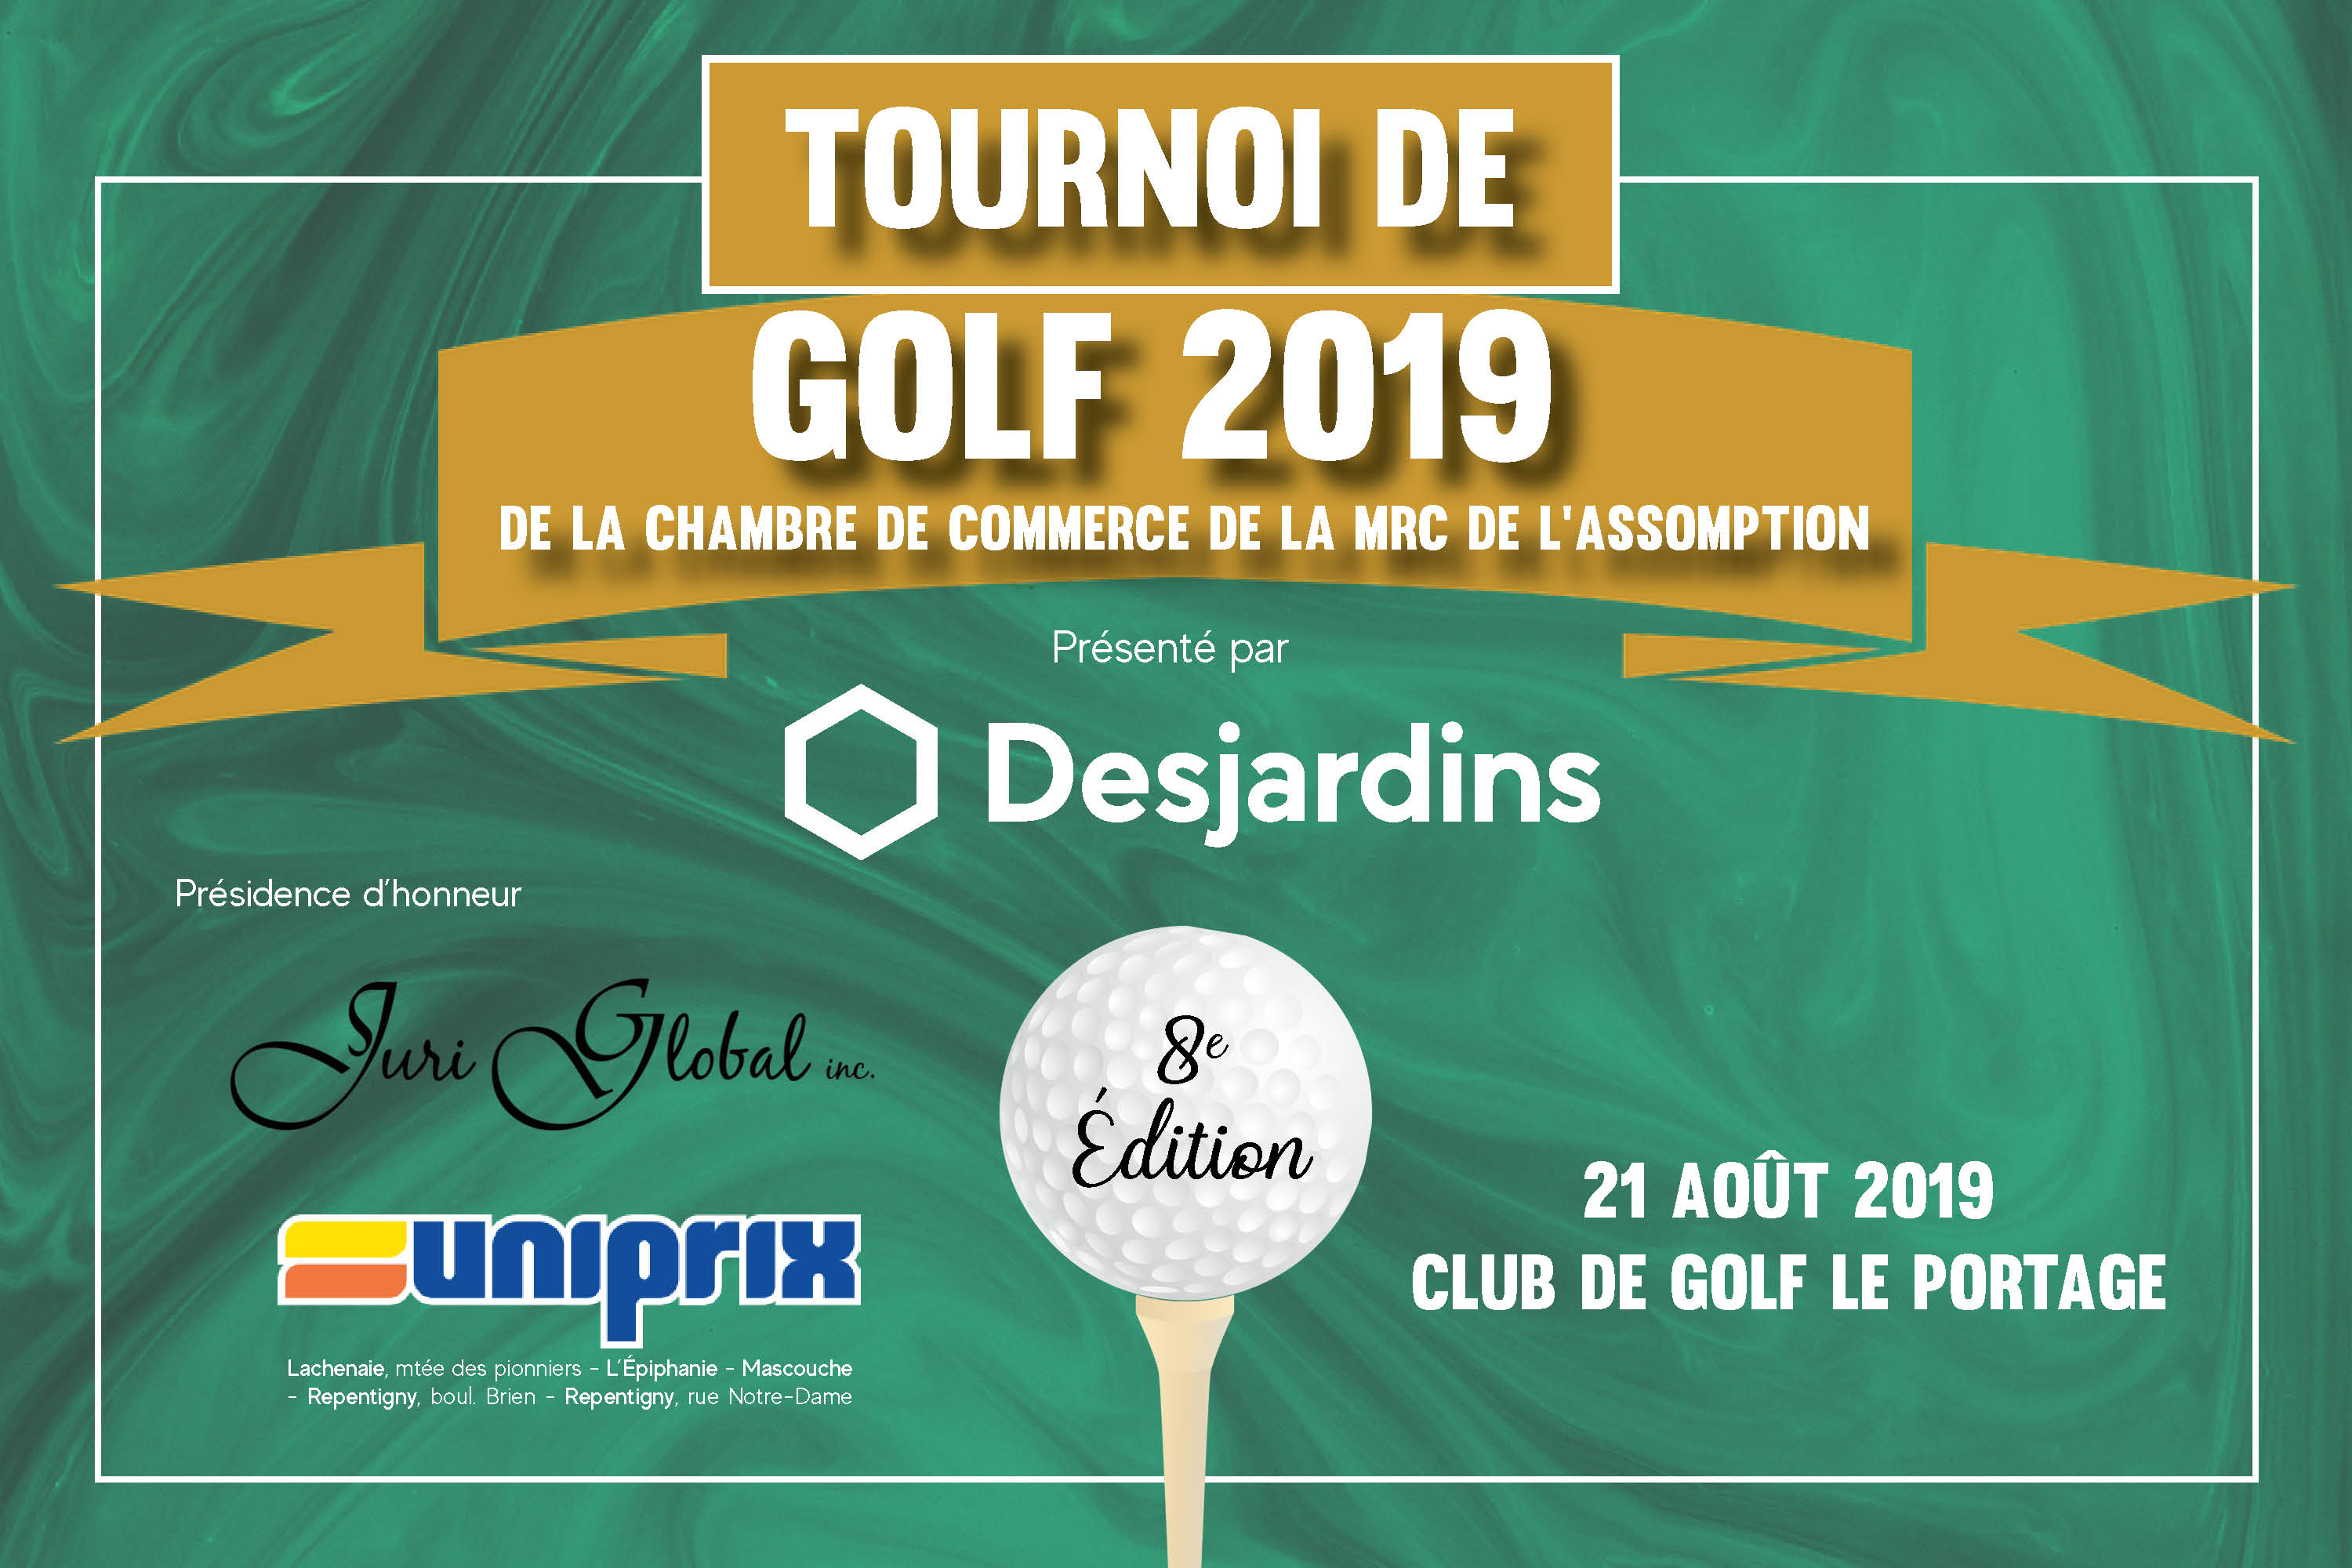 Photo Tournoi de golf - 21 août 2019